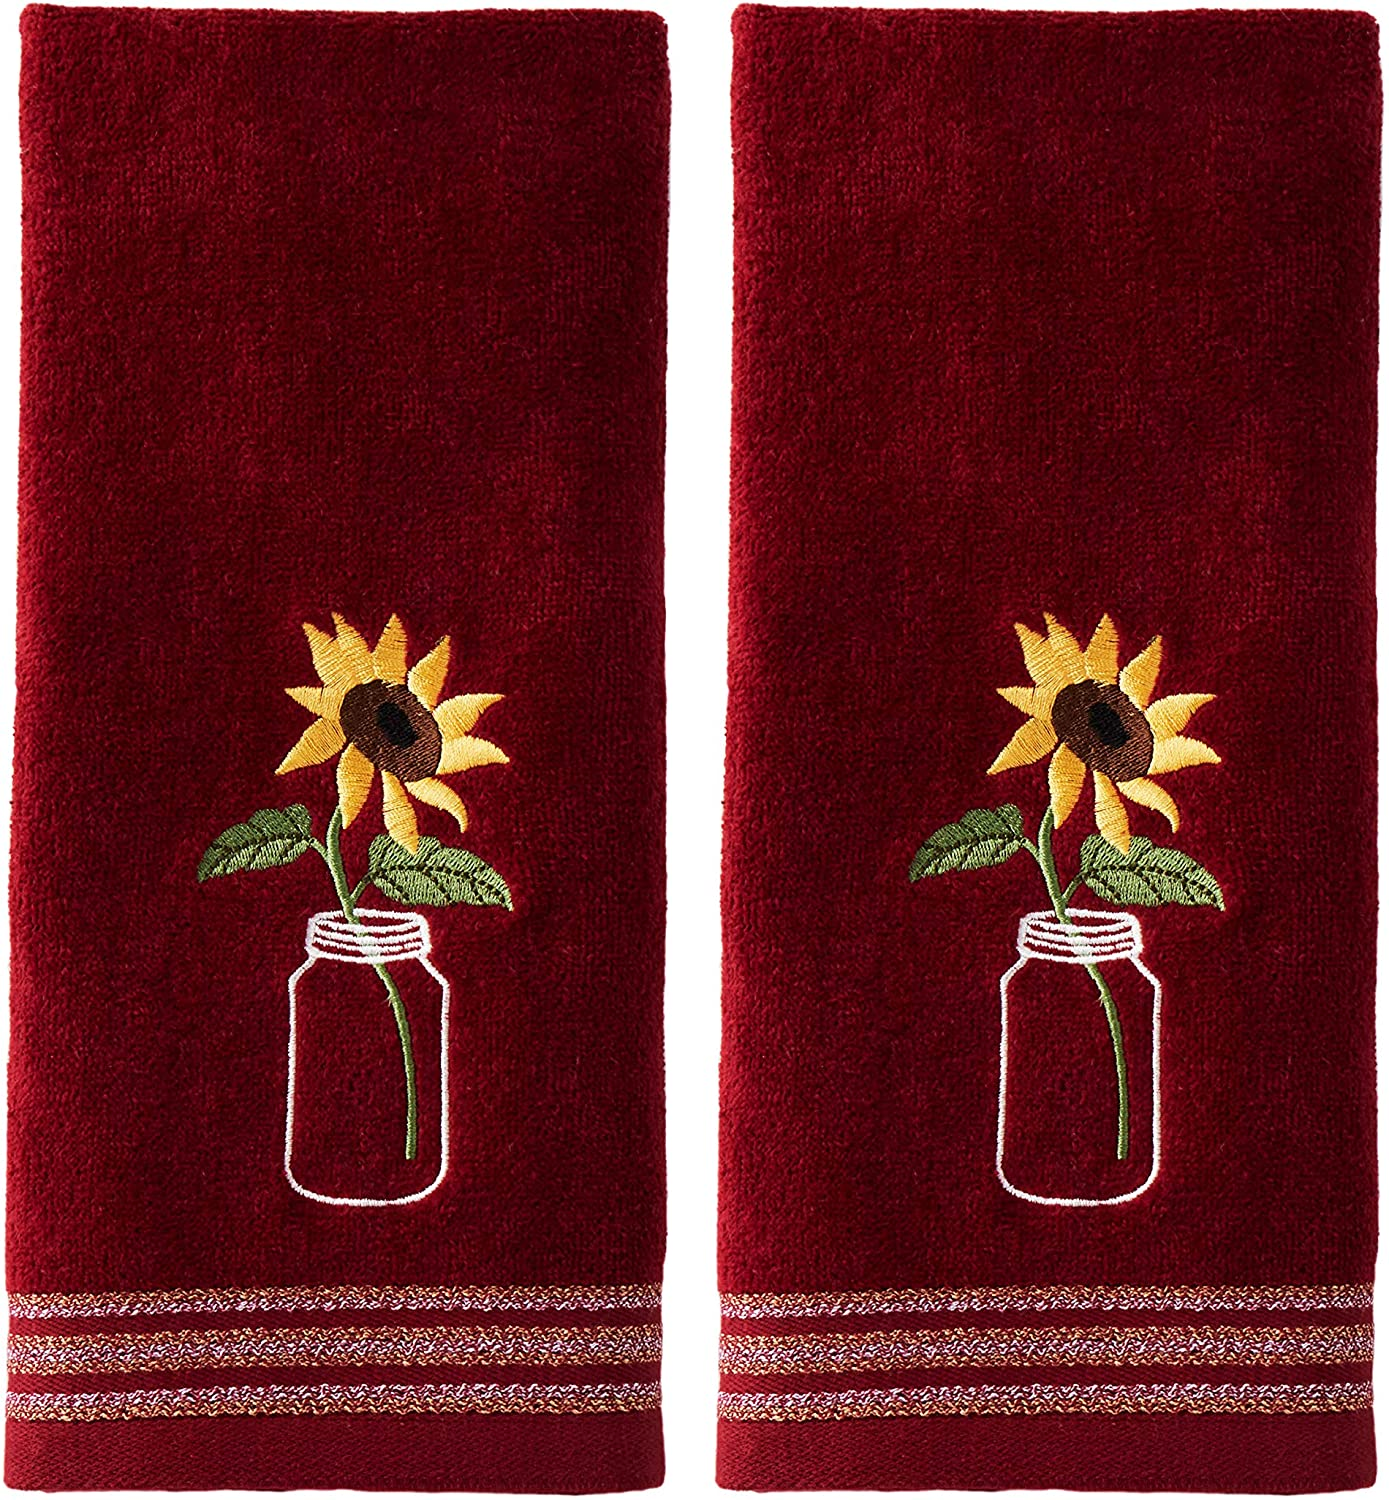 SKL Home by Saturday Knight Ltd. Sunflower In Jar 2 Pc Hand Towel Set, Wine 2 Count